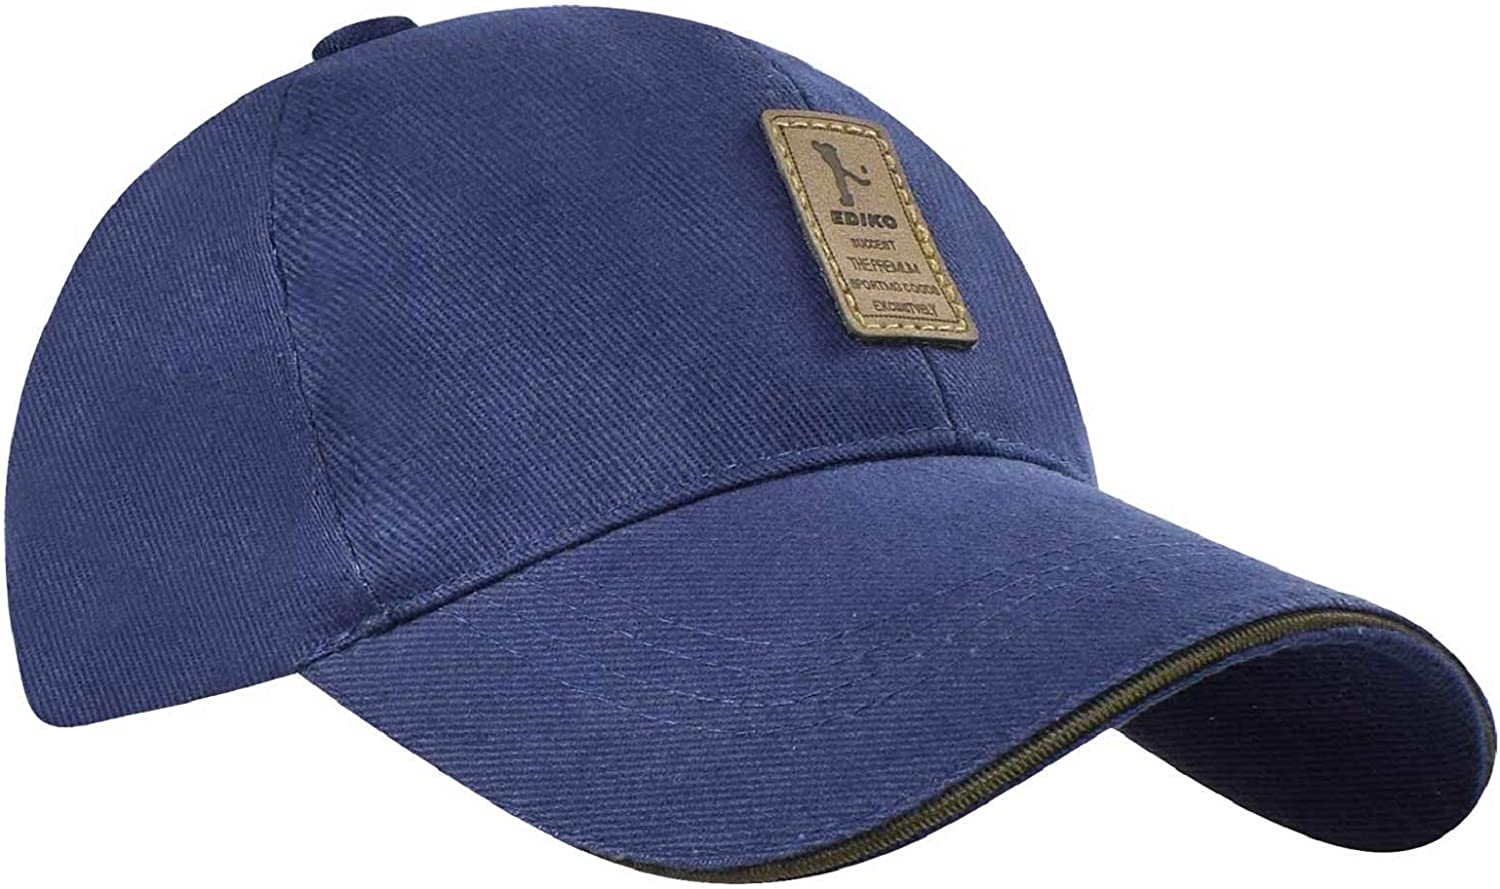 Tuopuda Baseball Caps Solid Color Cotton Hat Adjustable Size